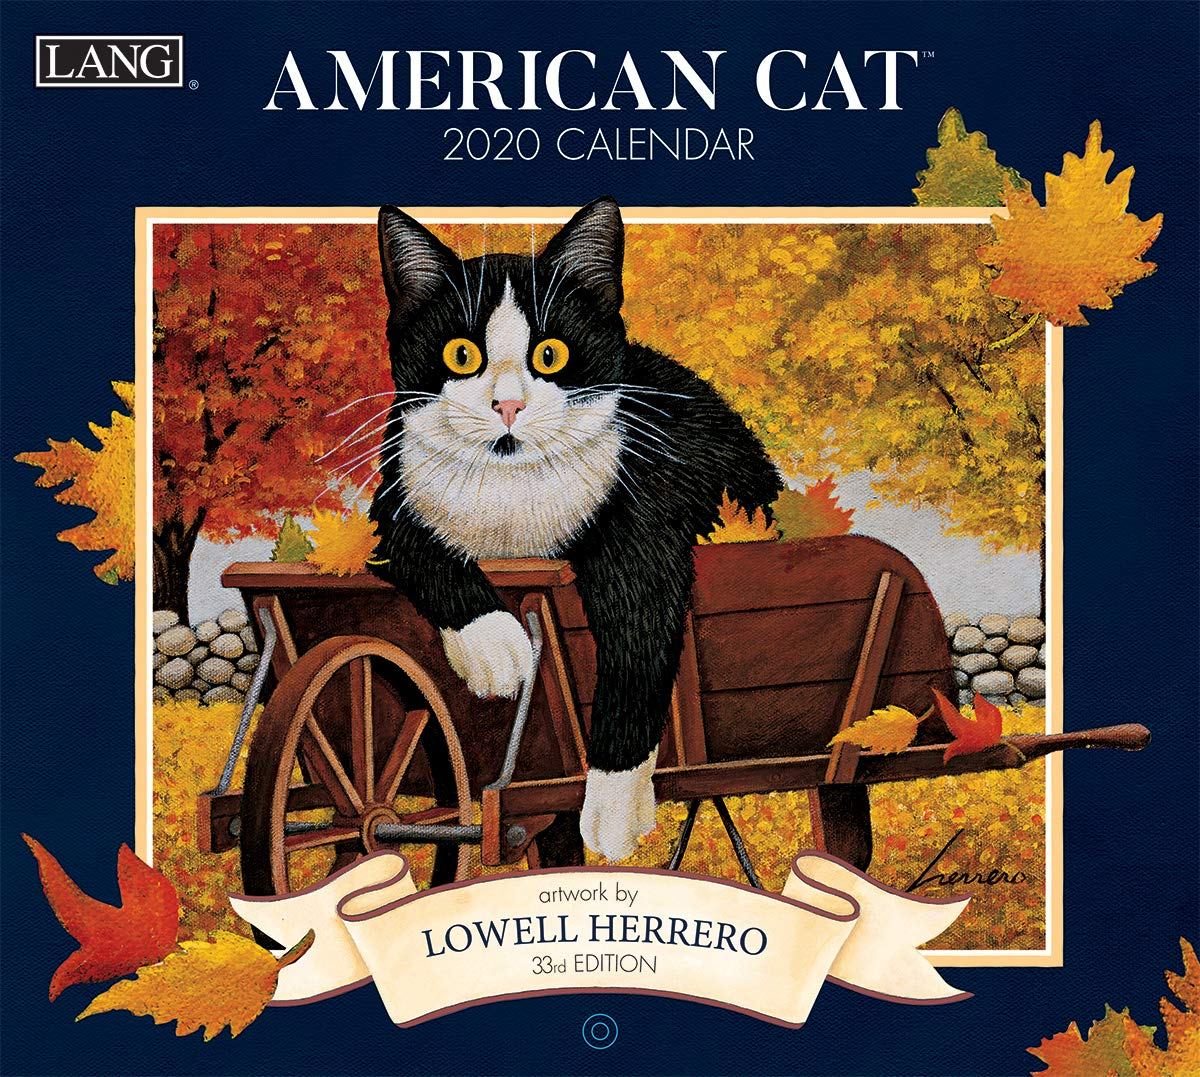 Lang American Cat 2020 Wall Calendar (20991001889) by The LANG Companies